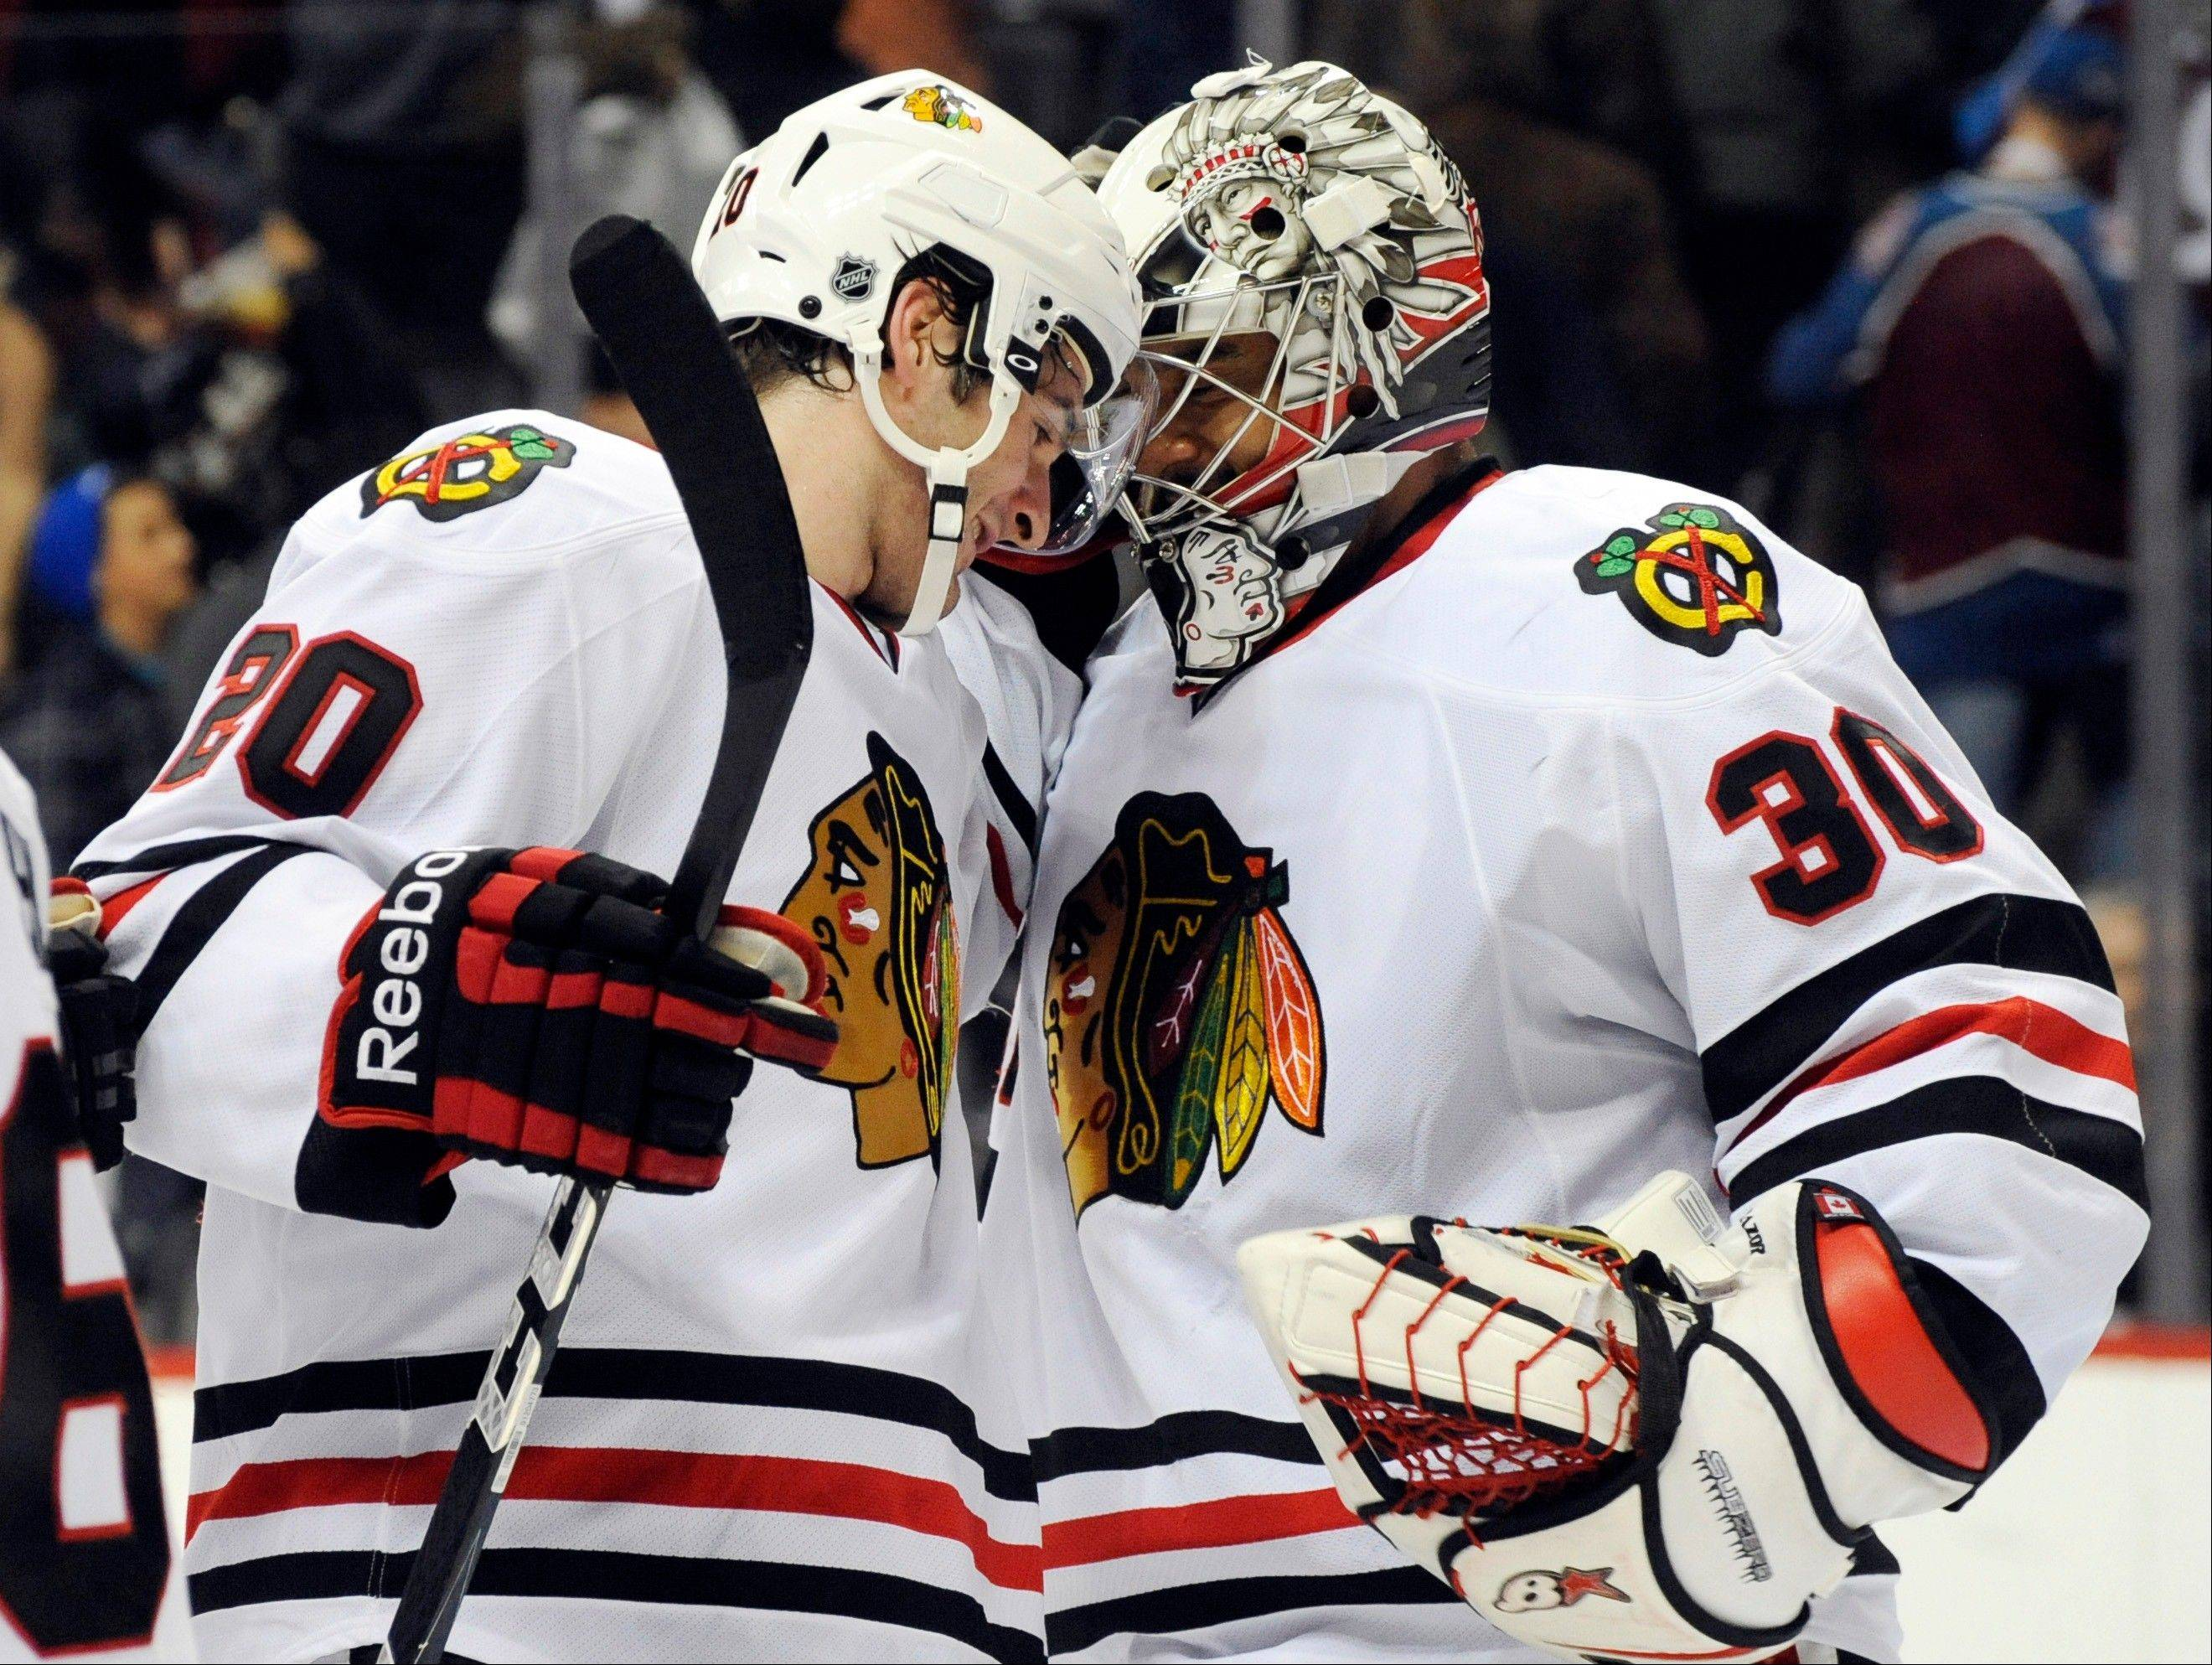 Blackhawks goalie Ray Emery celebrates with Brandon Saad during Monday night's victory.